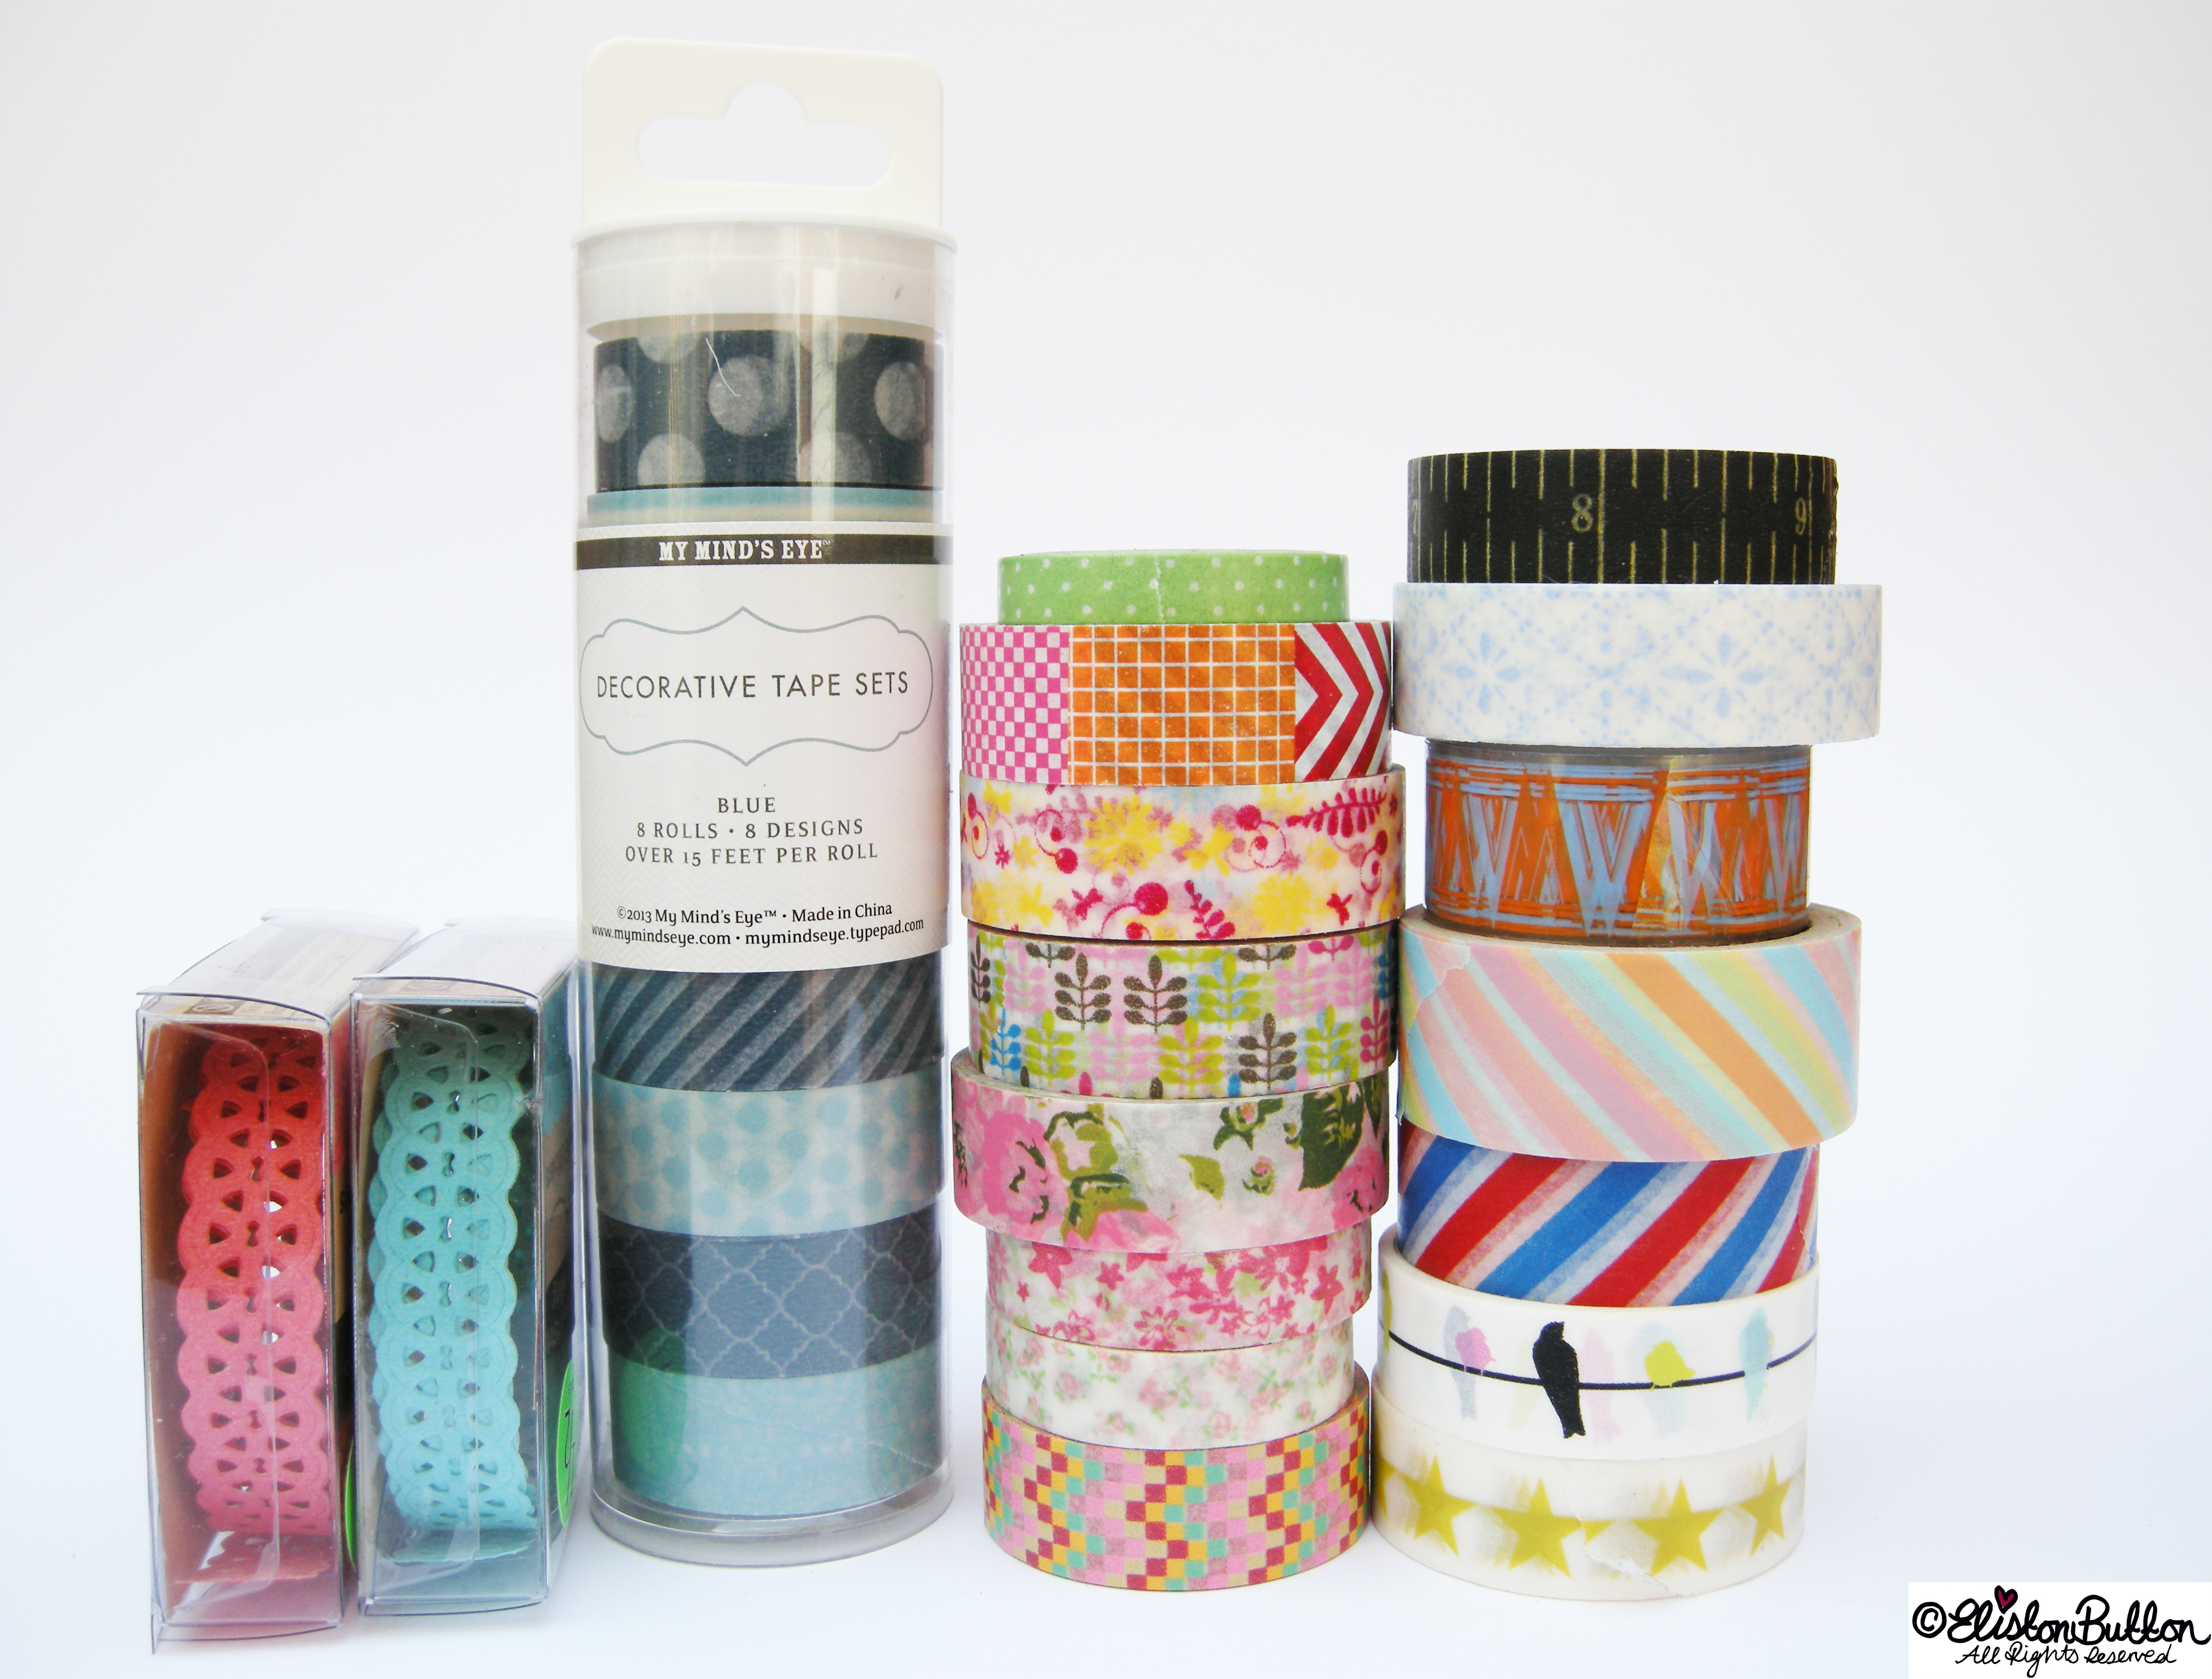 Patterned Piles of Washi Tape Rolls - My Washi Tape Collection at www.elistonbutton.com - Eliston Button - That Crafty Kid – Art, Design, Craft & Adventure.